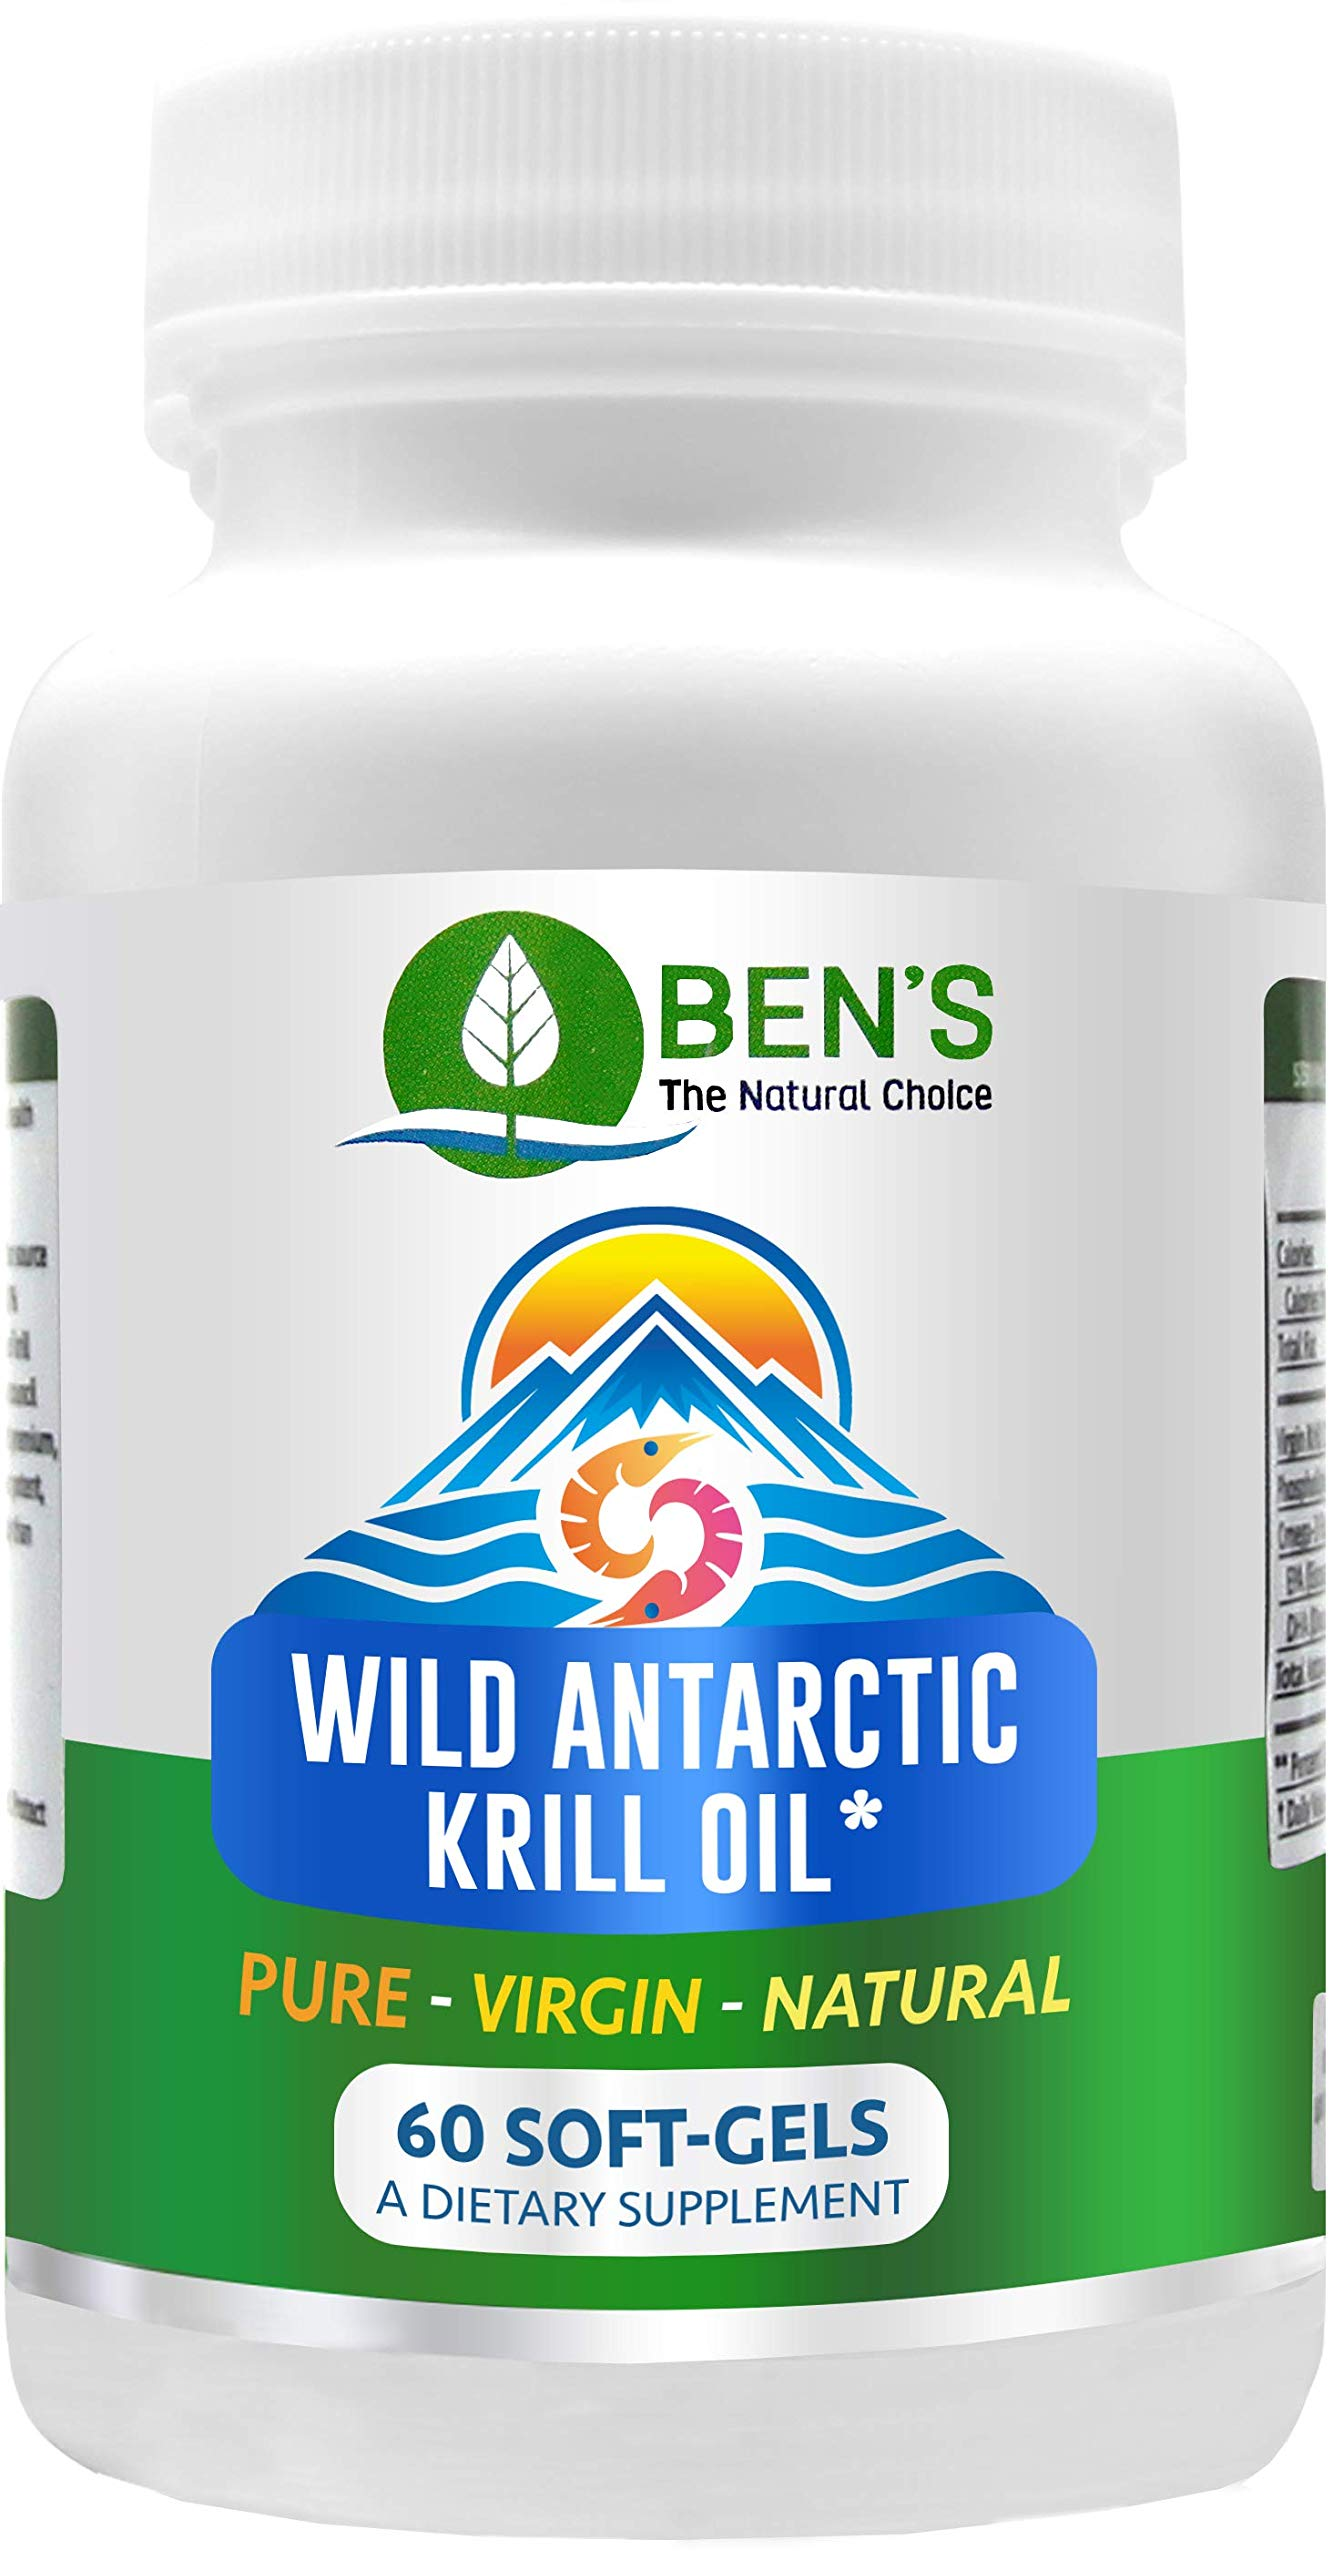 Ben's Wild Antarctic Krill Oil - Lubricate & Protect Joints - Supports Immune System - Heart Healthy (6 Bottles)